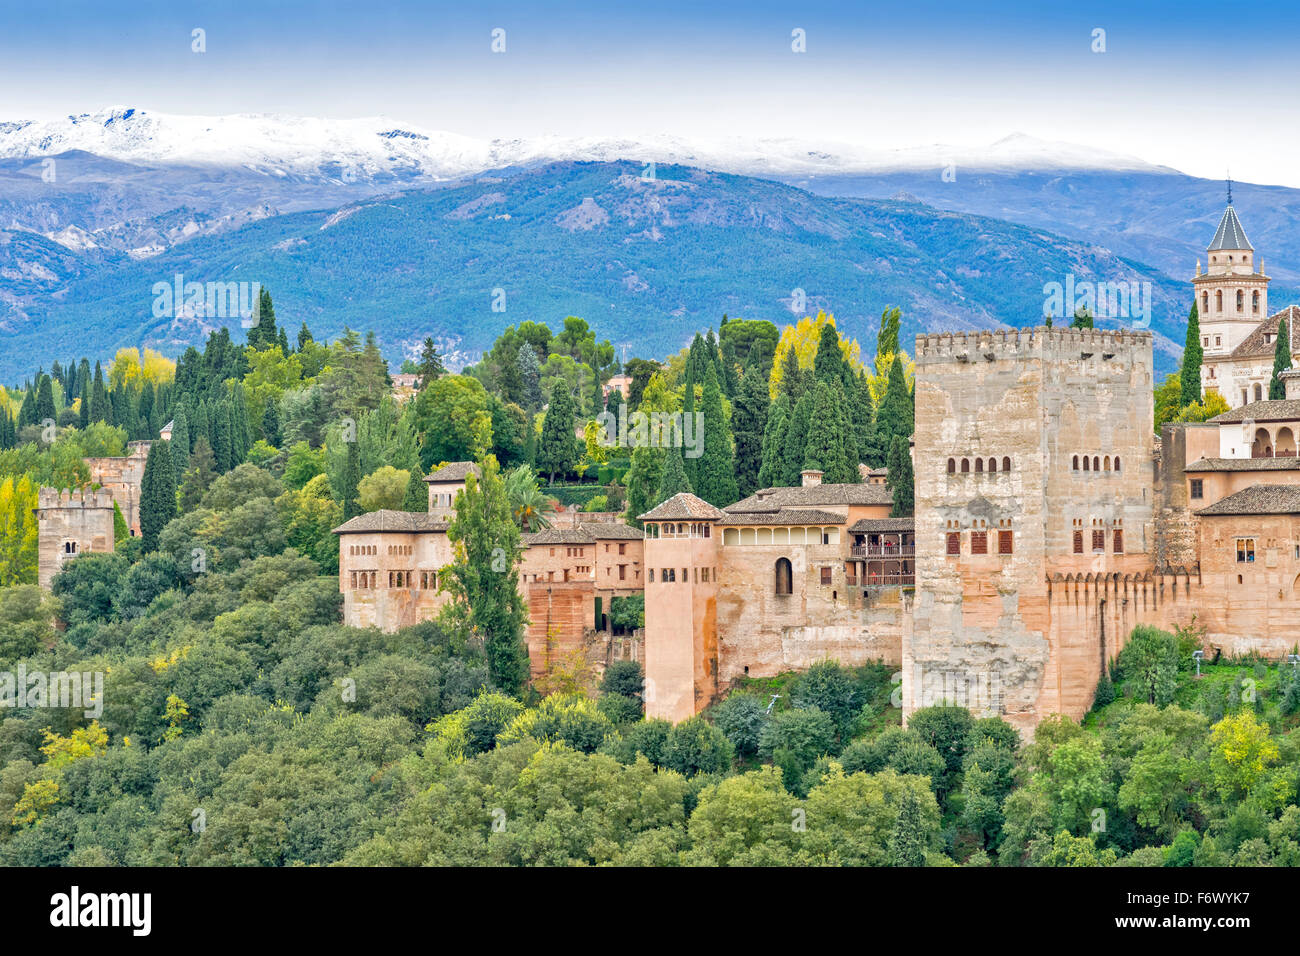 GRANADA SPAIN THE ALHAMBRA A MOORISH CITADEL AND PALACE  AUTUMN TREES AND SNOW ON THE SIERRA NEVADA MOUNTAINS - Stock Image